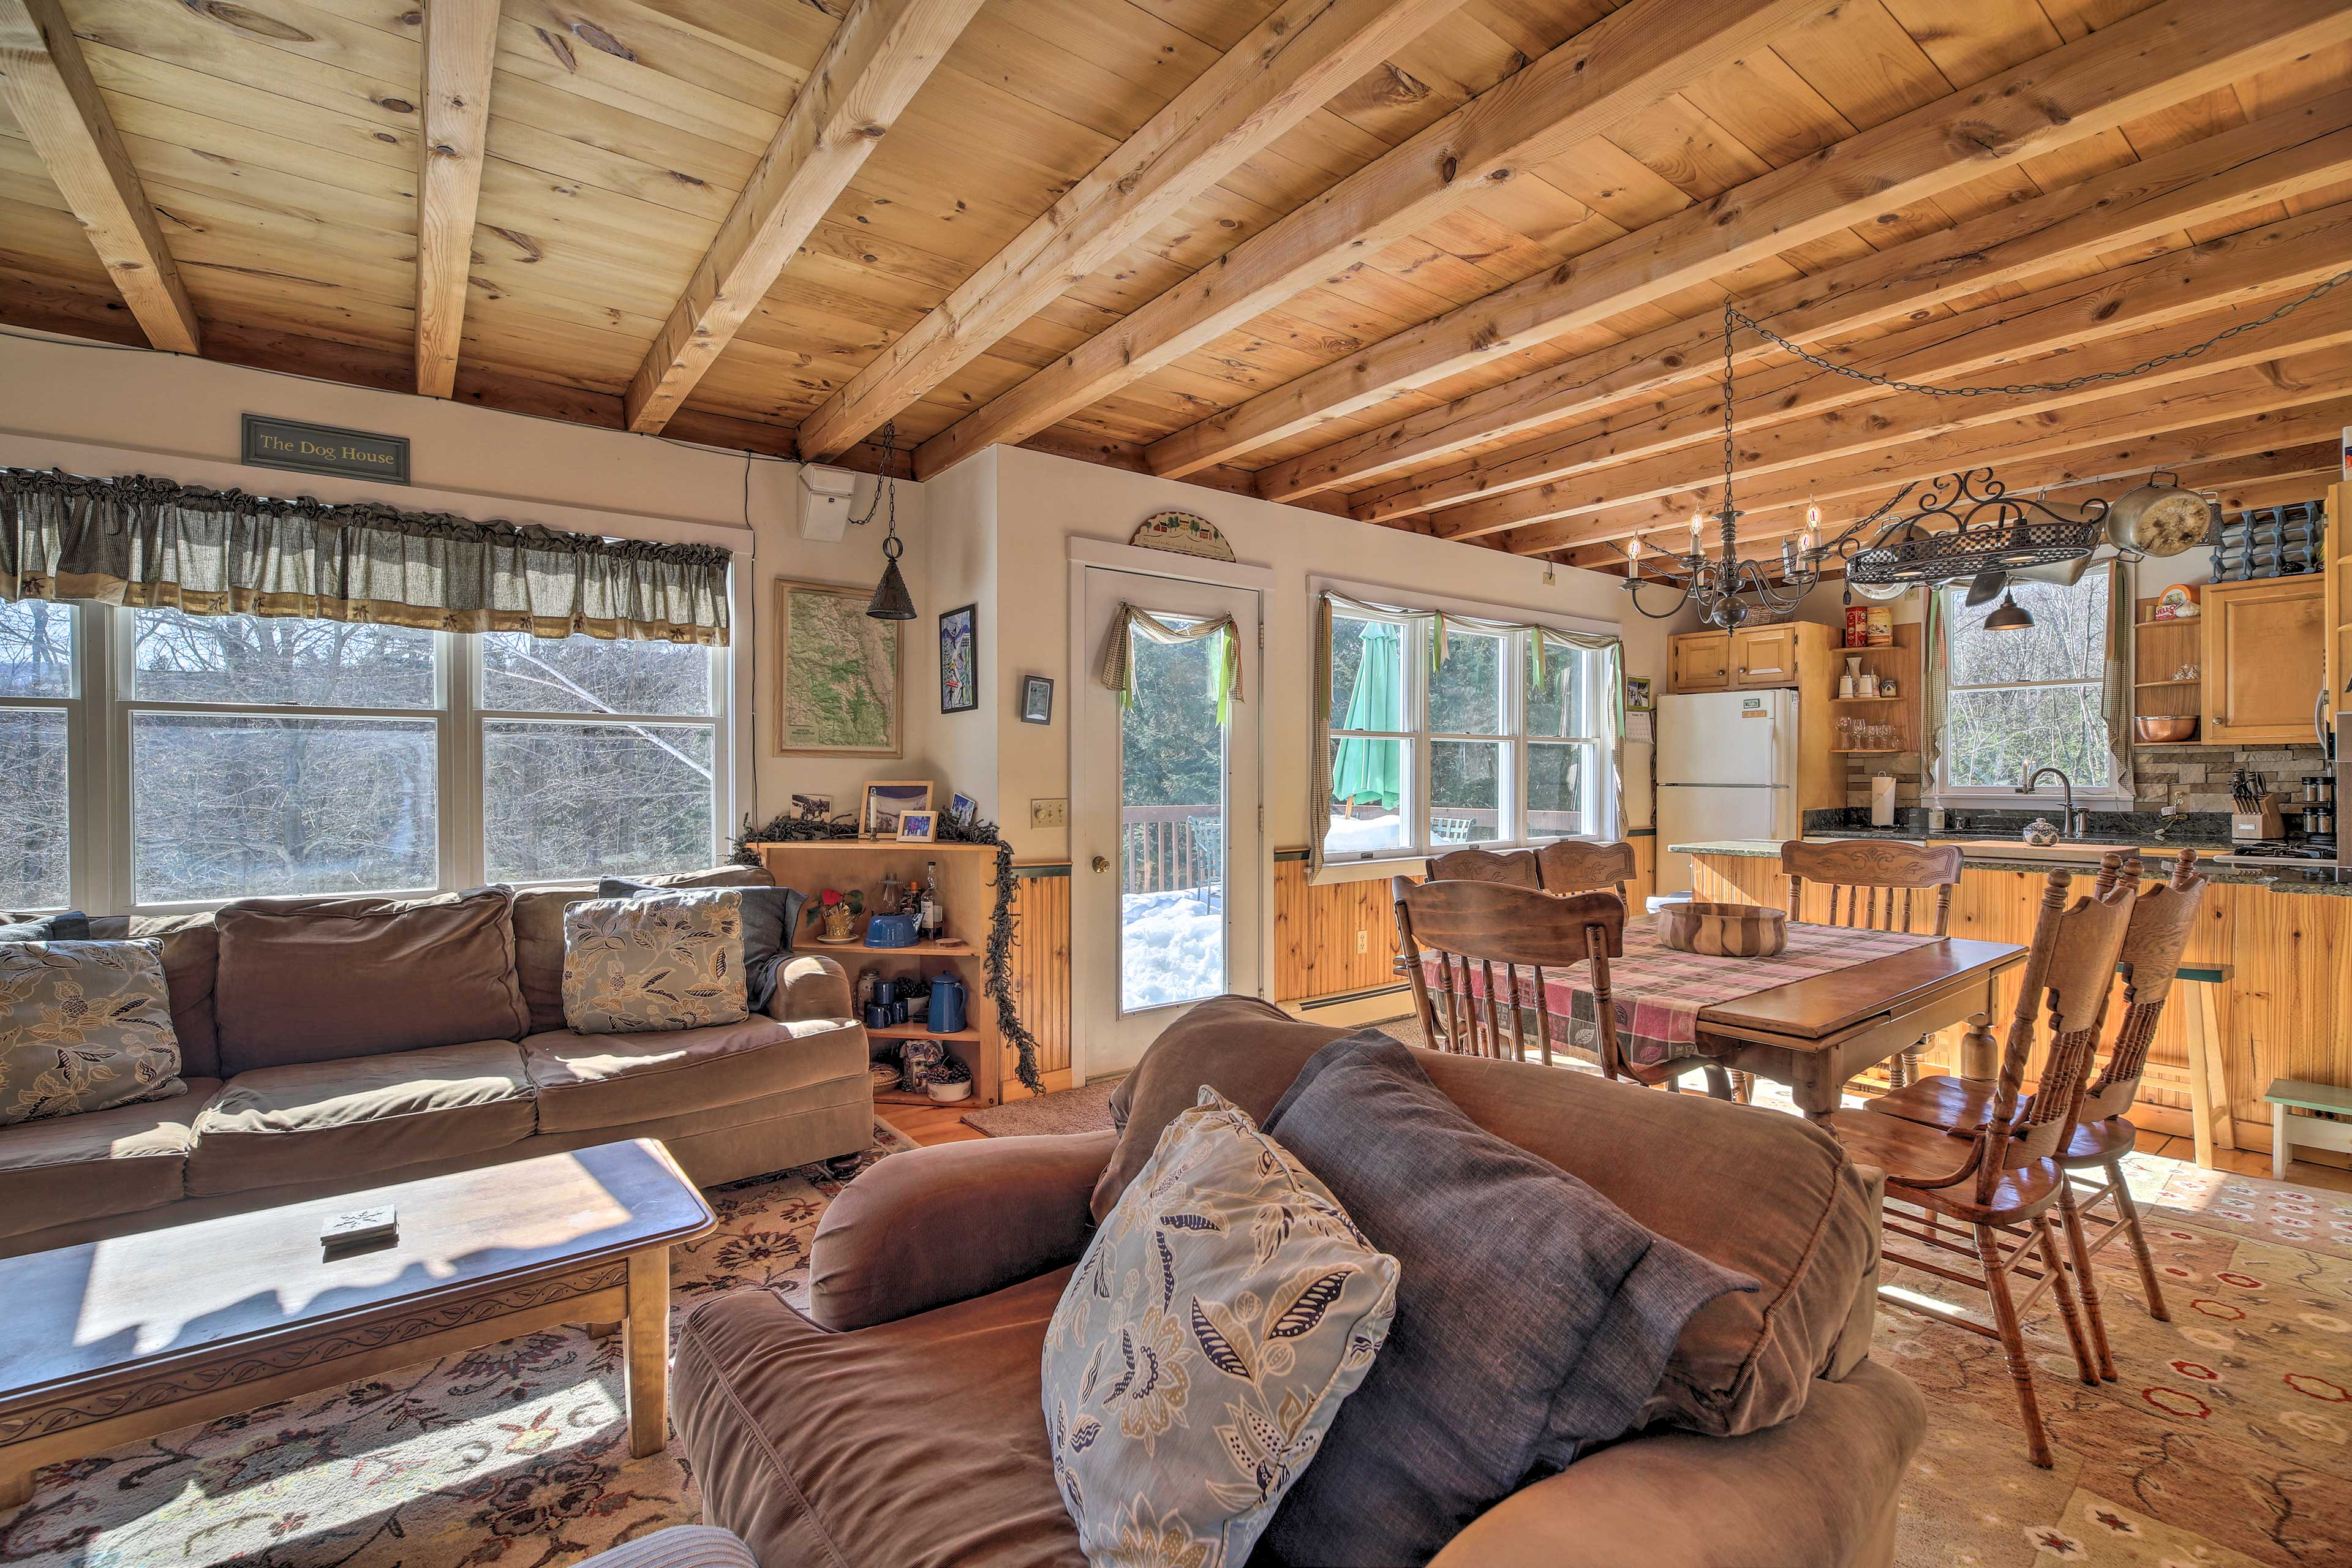 The comfortable home features bright natural light and cozy seating.